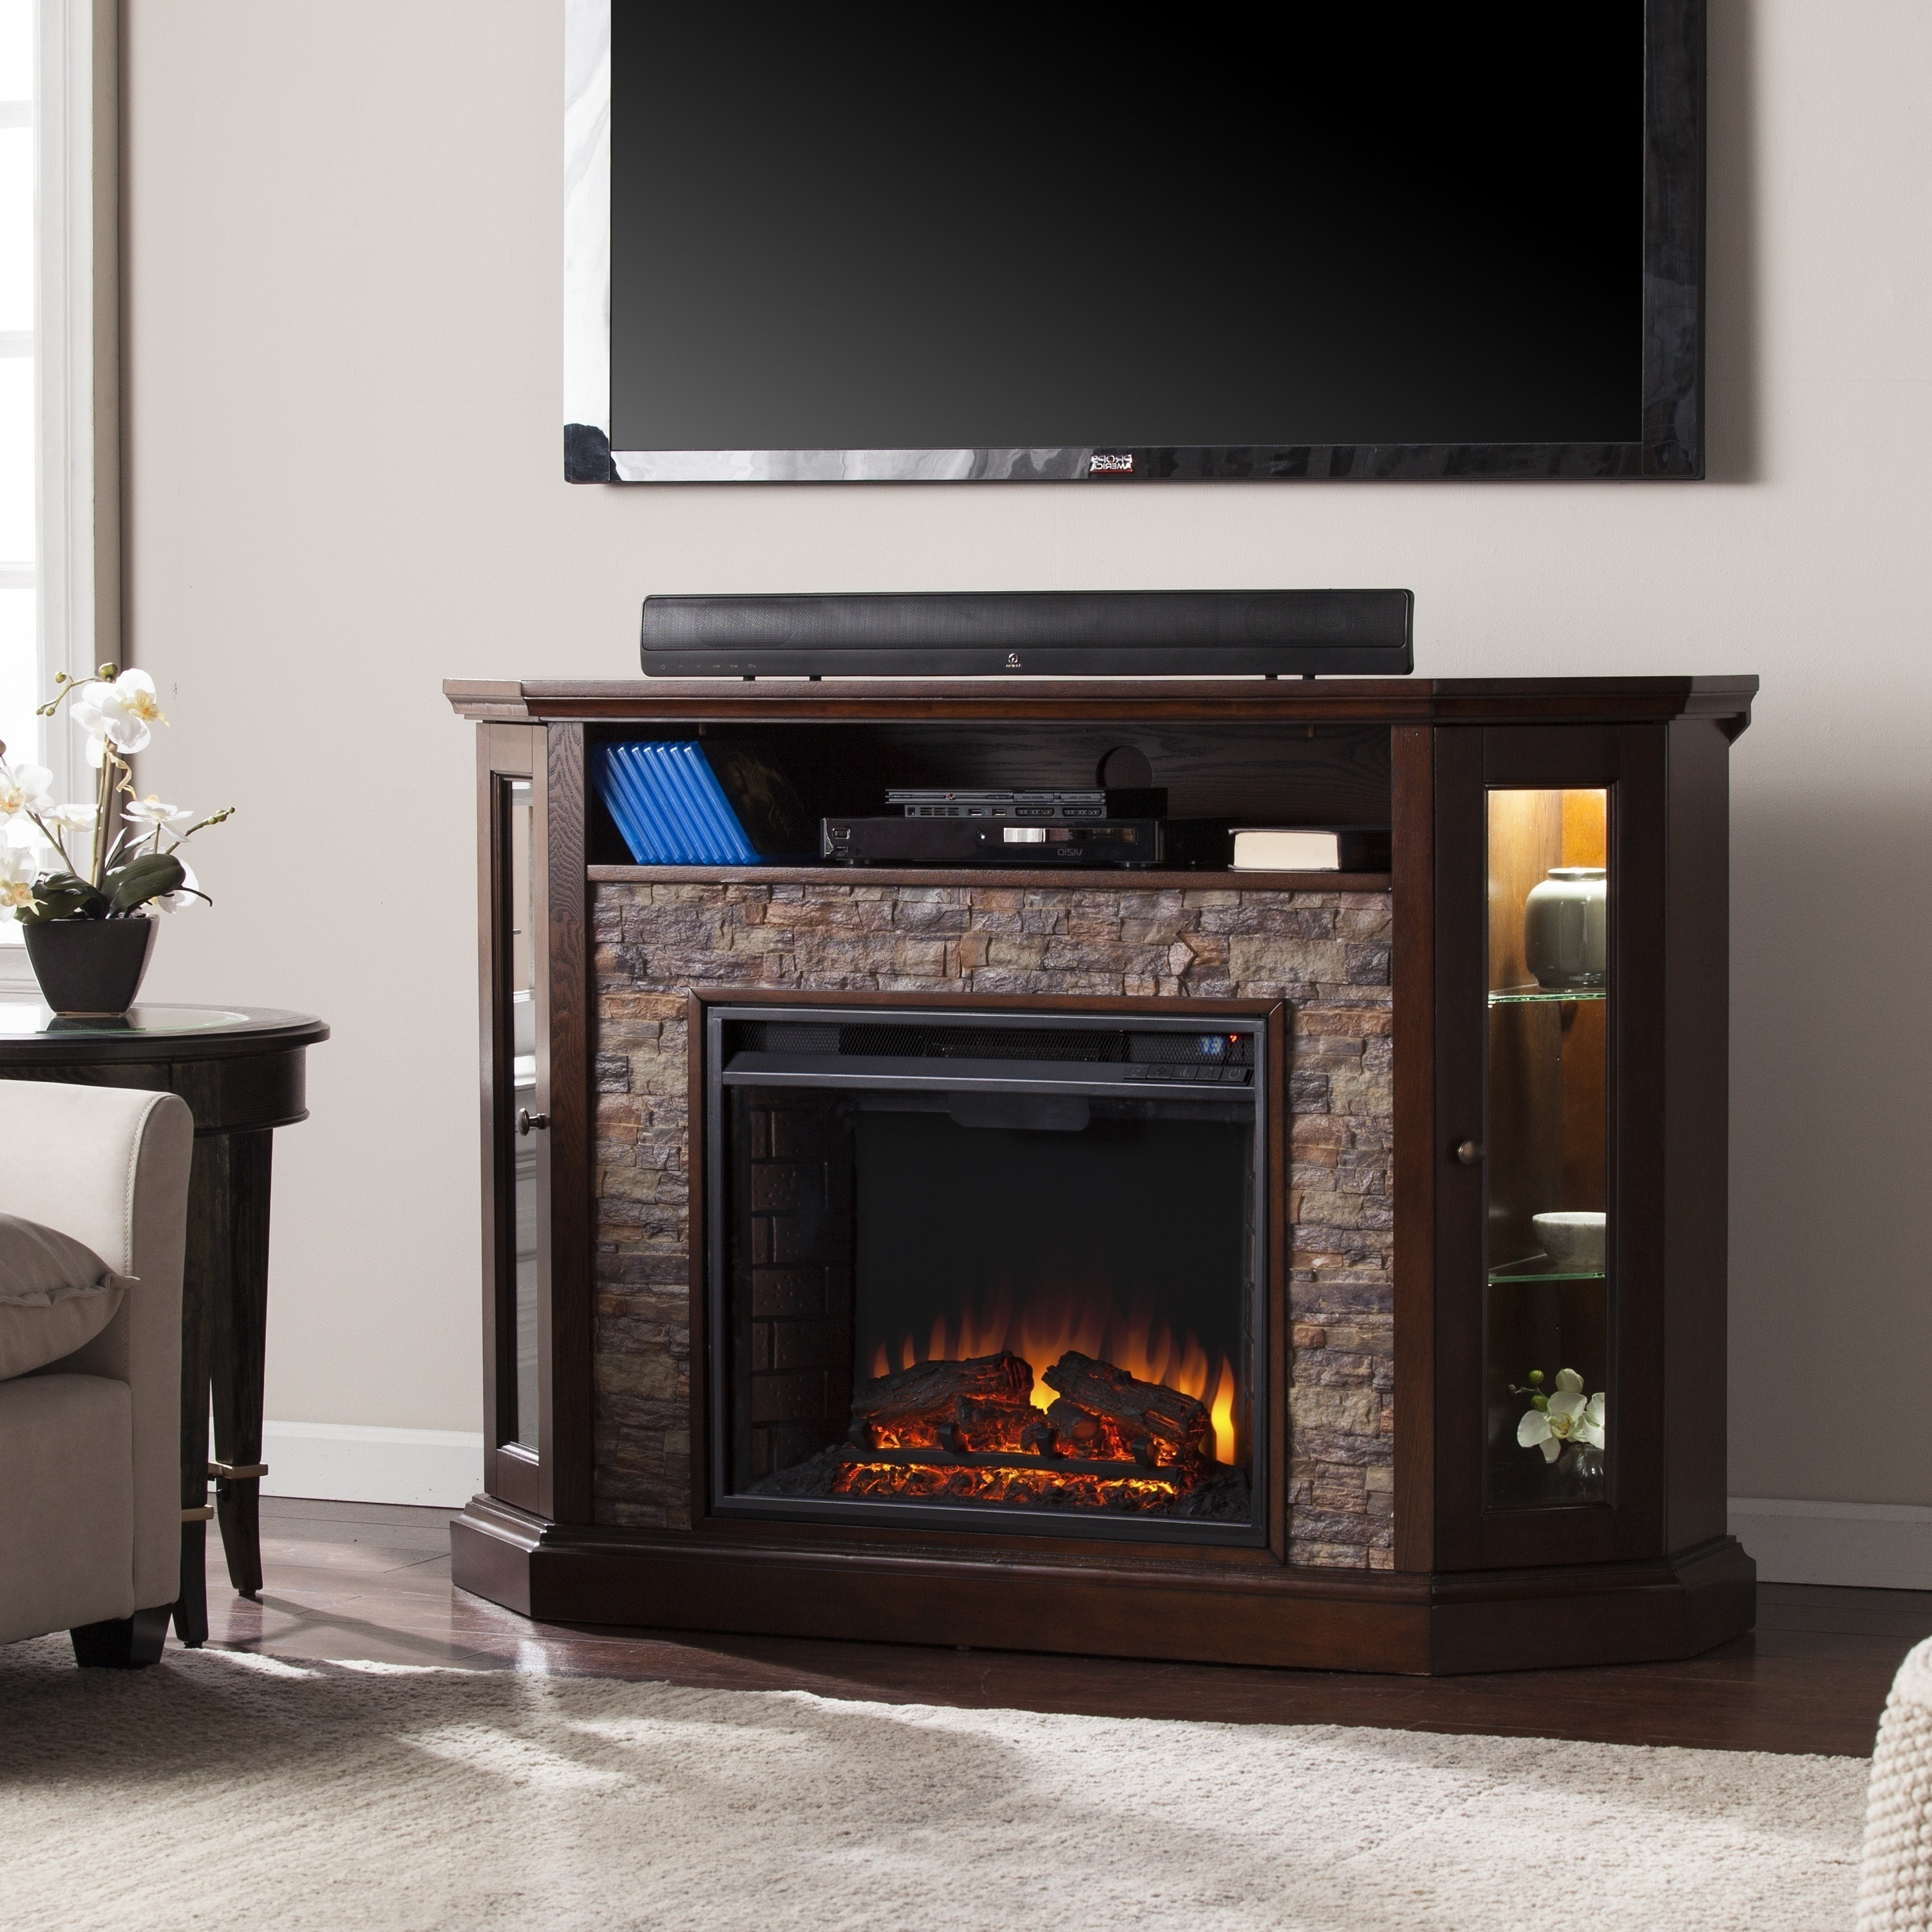 Buy corner fireplaces online at overstock our best decorative accessories deals